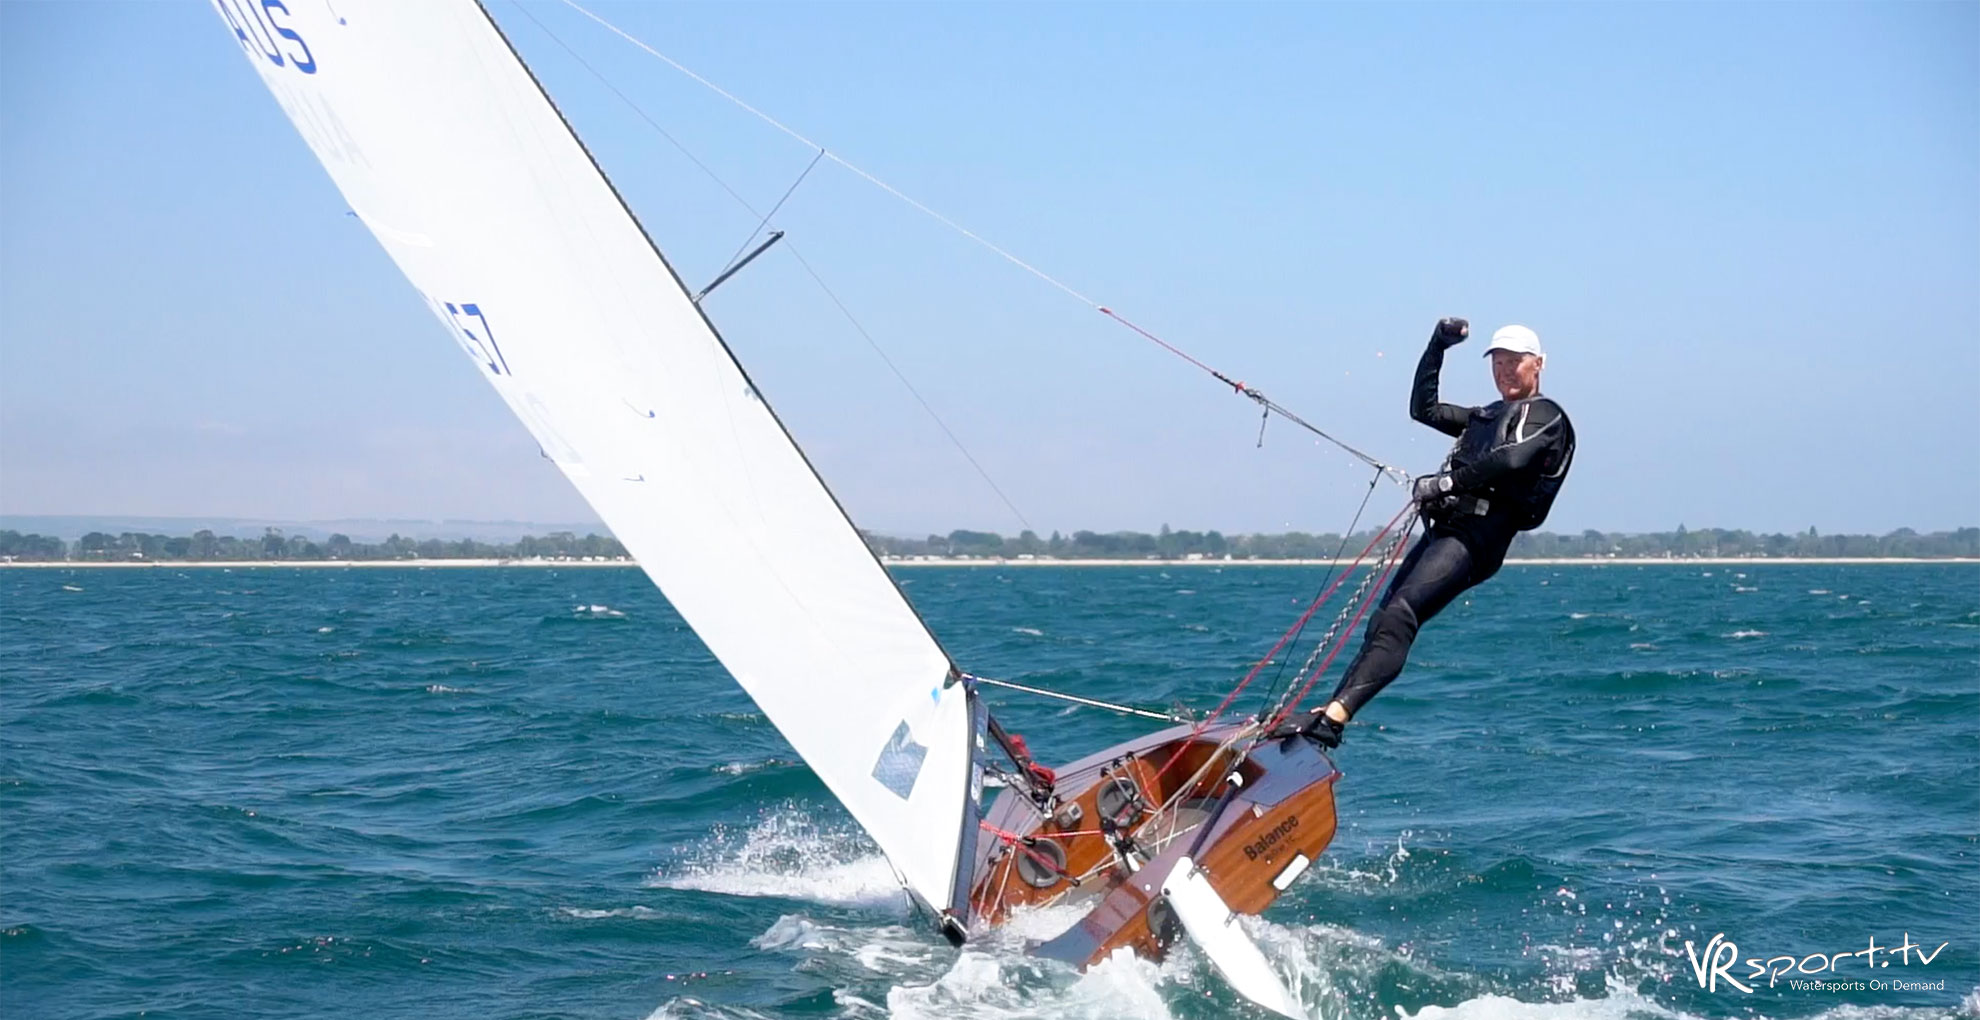 VIDEO: Bulka takes out world title in fast finish | Contender Worlds